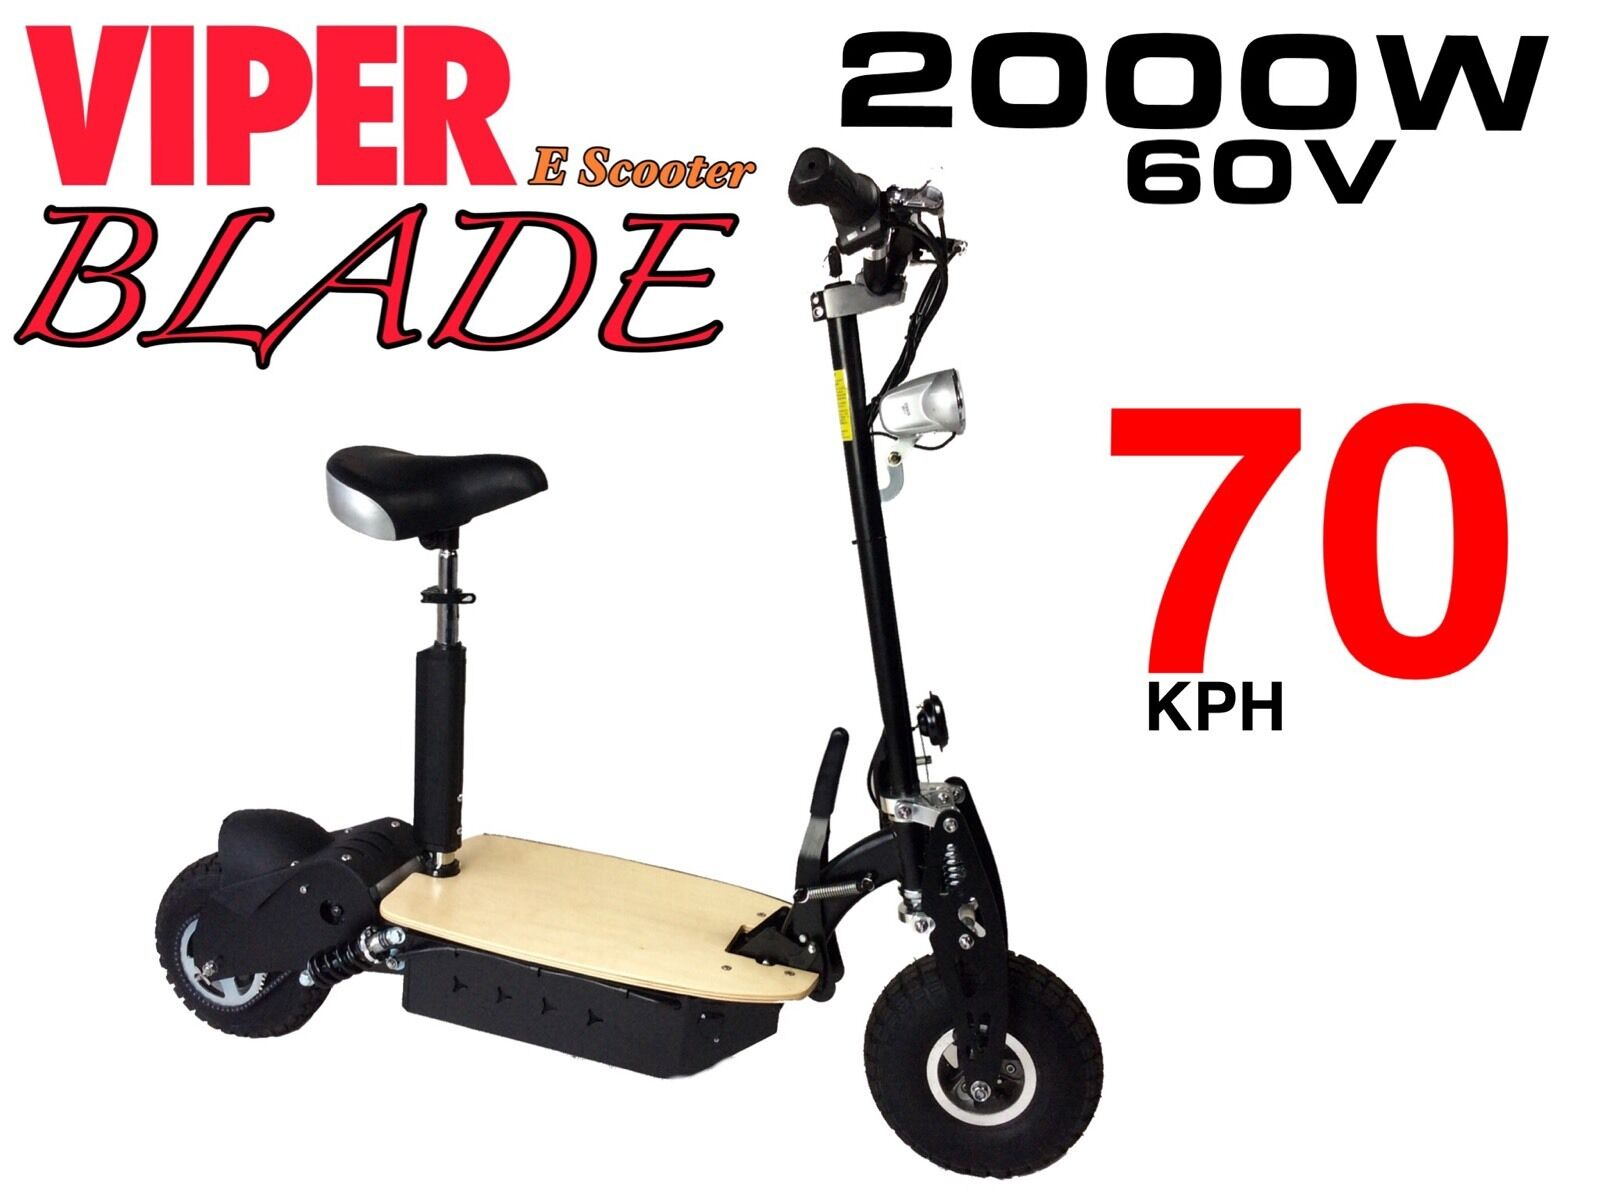 Electric Scooter 2000W 60V Viper Blade New 2017 Model, Terrain Tyres, 70KPH. CE.